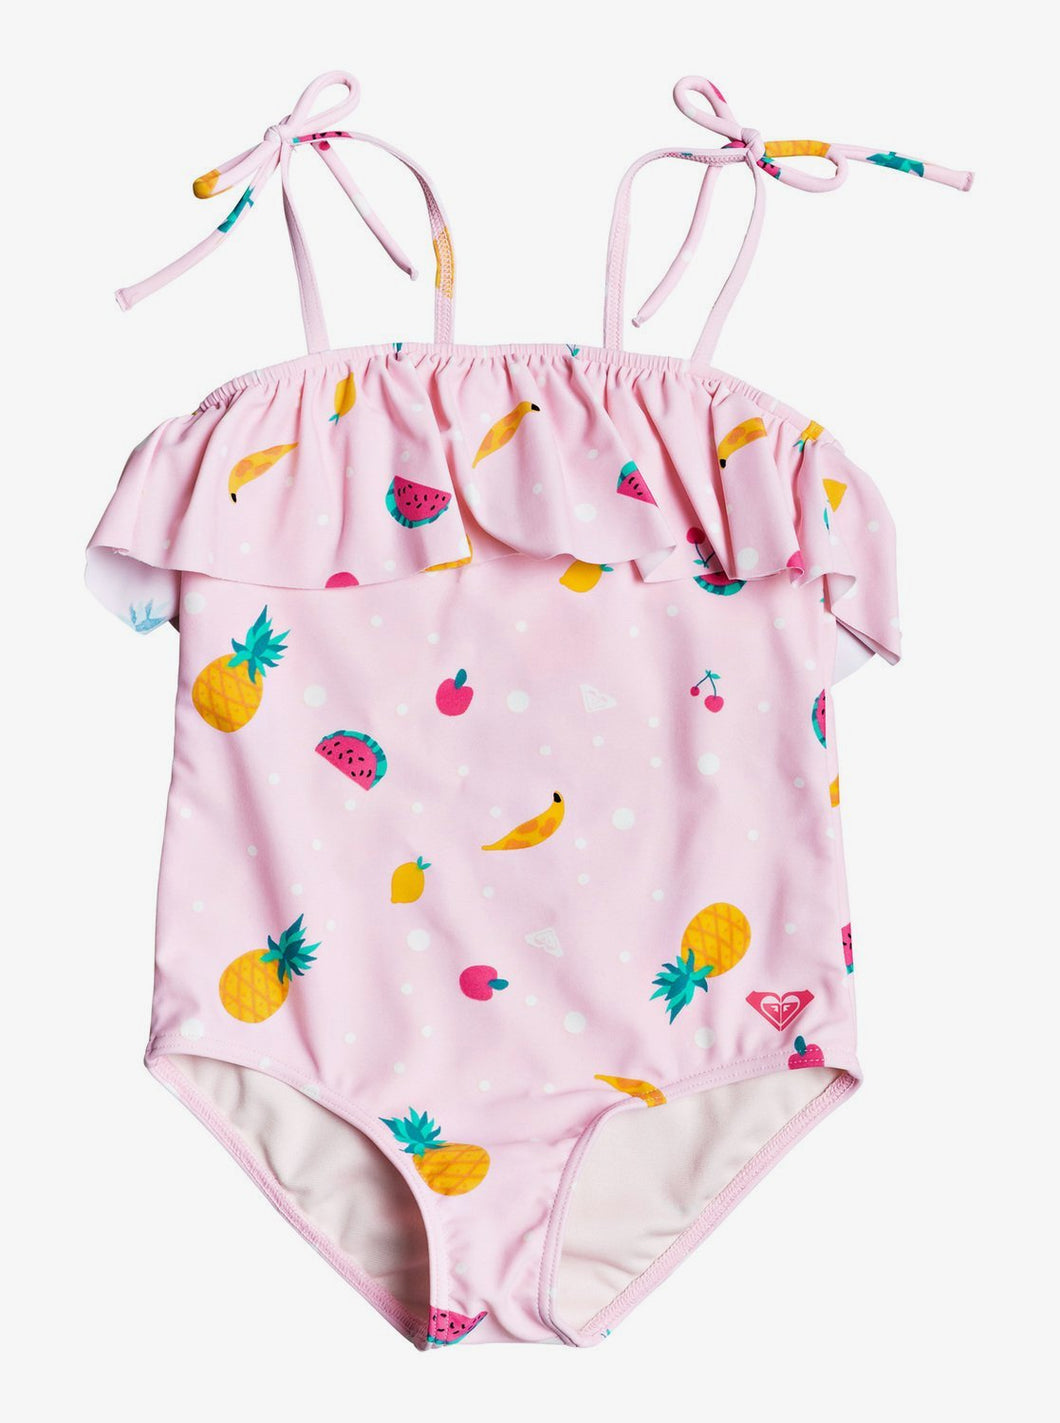 Girls Lovely Aloha 1 Piece Swimsuit : Sizes 2 to 7